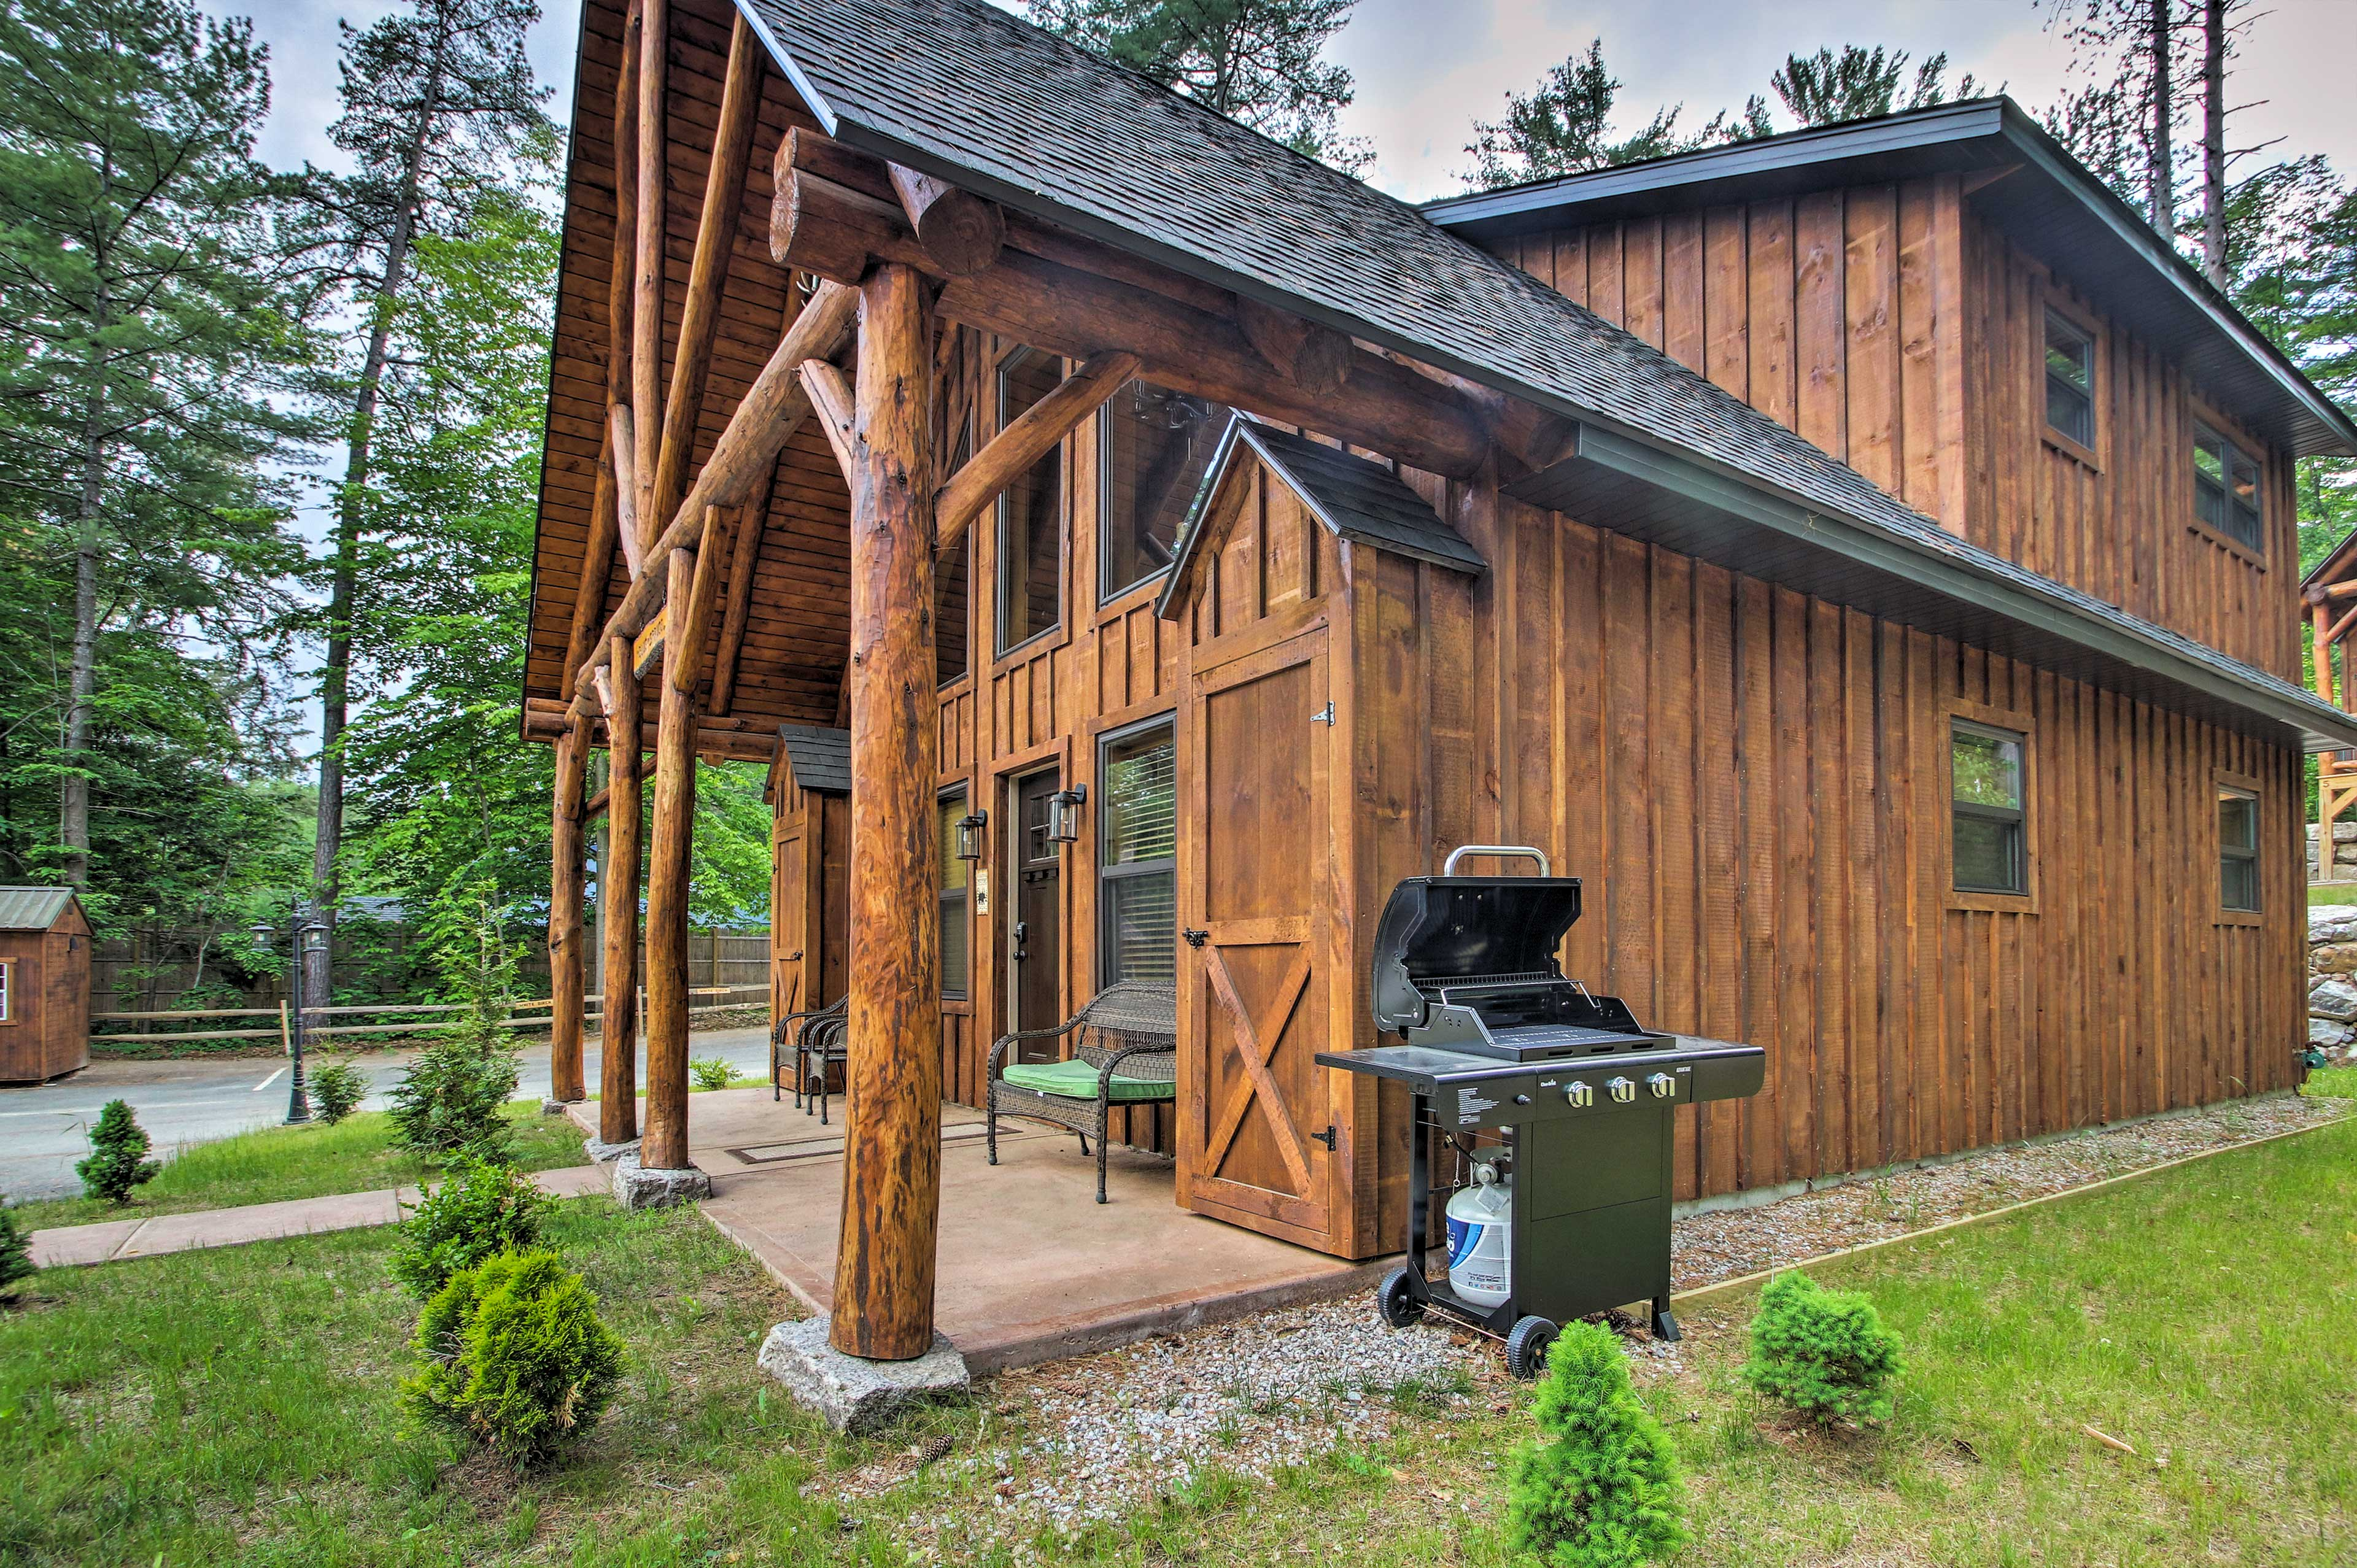 Fall in love with this mountain gem while cooking out on the gas grill!